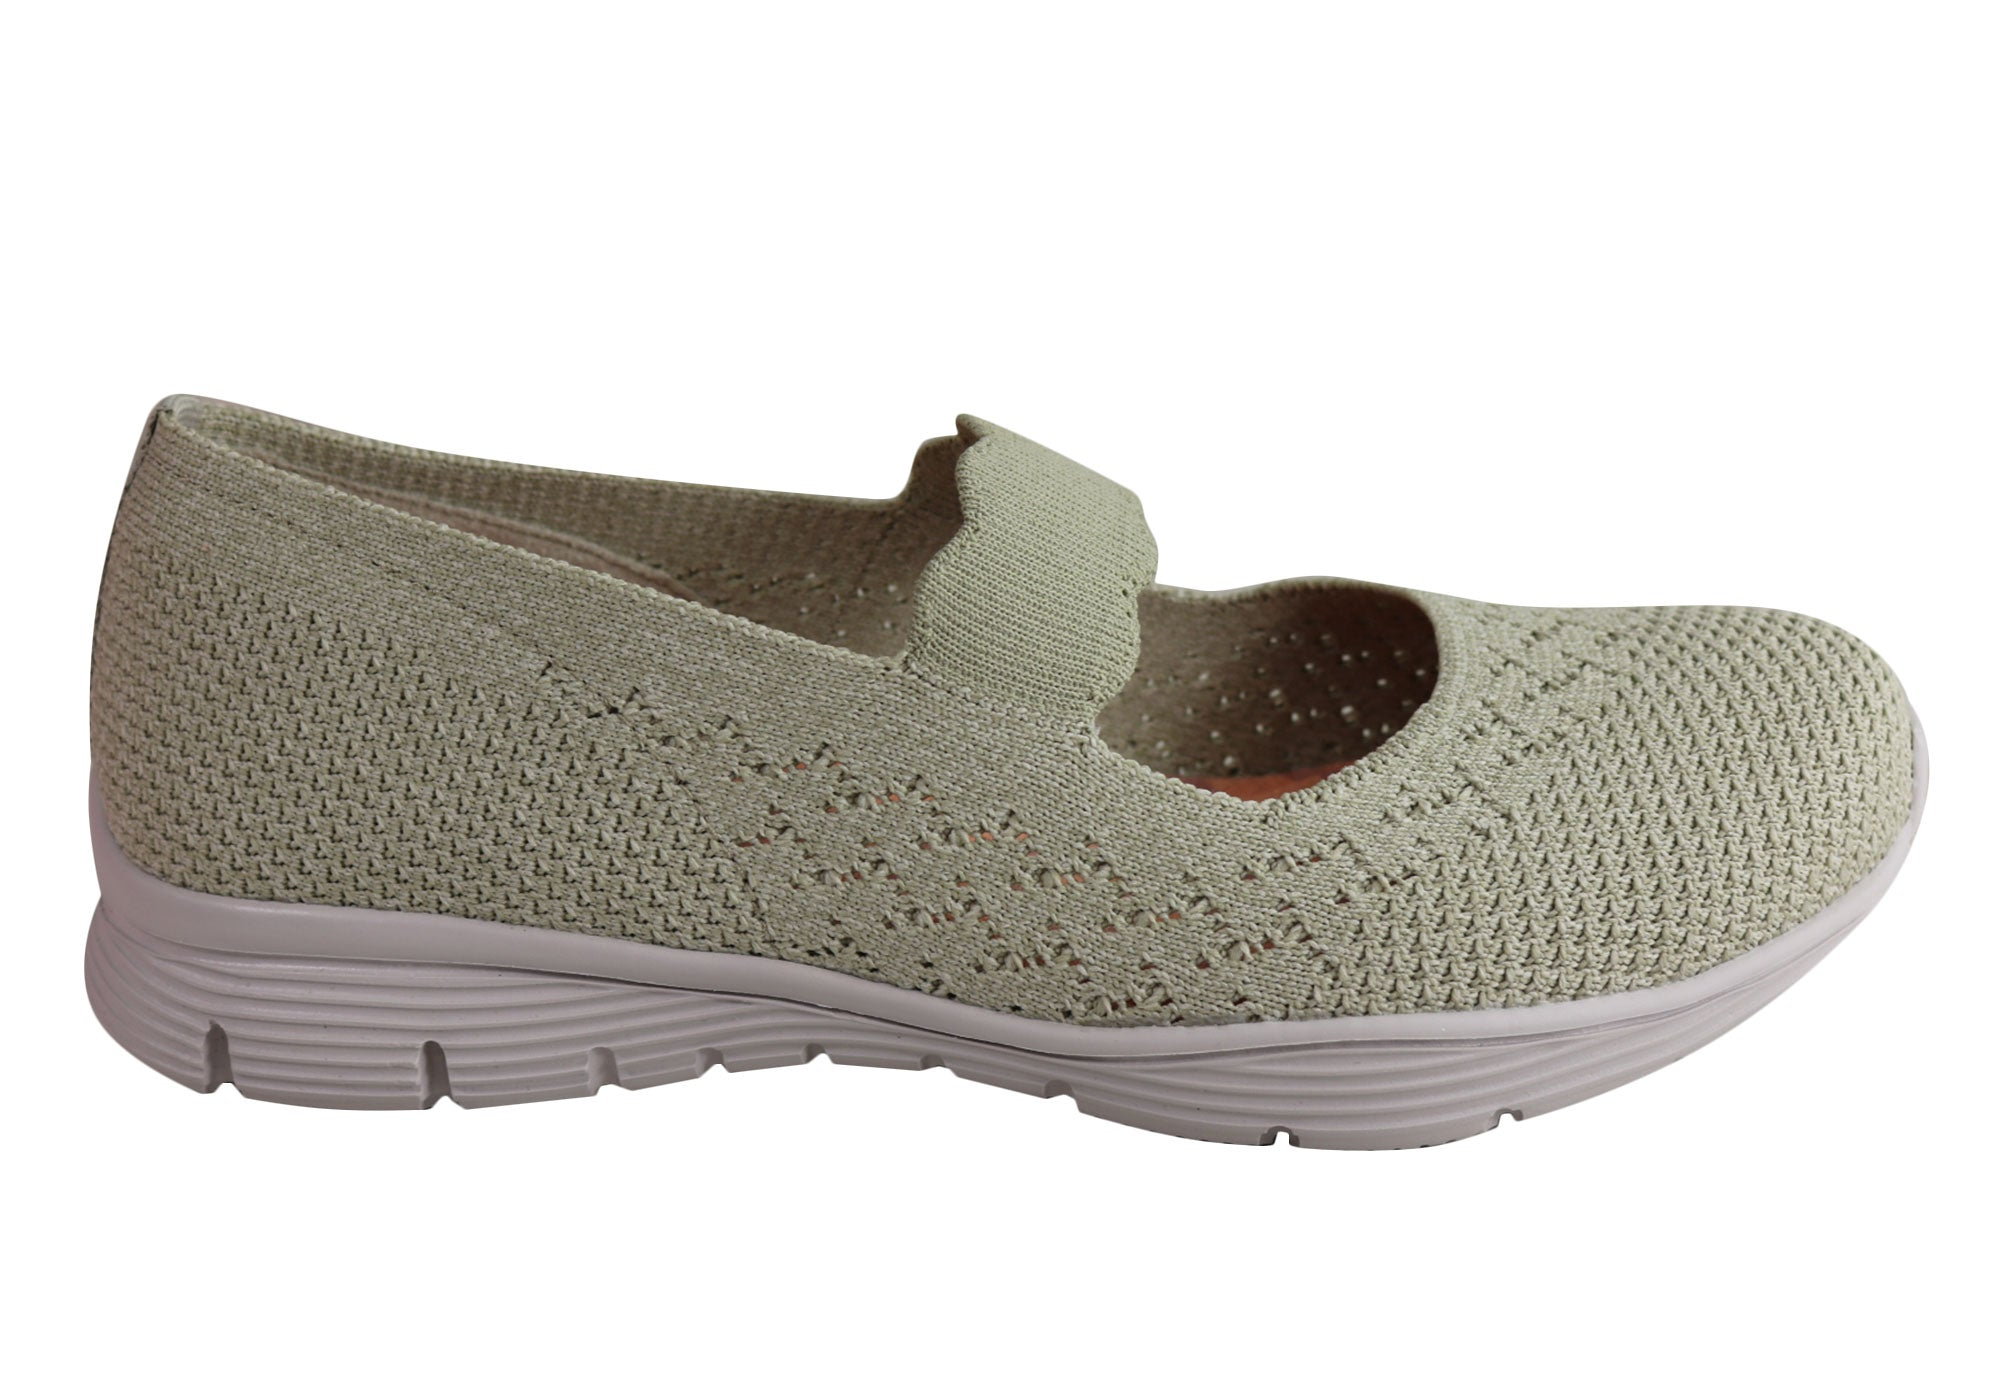 Details zu Skechers Womens Seager Power Hitter Comfy Memory Foam Mary Jane Shoes SSA